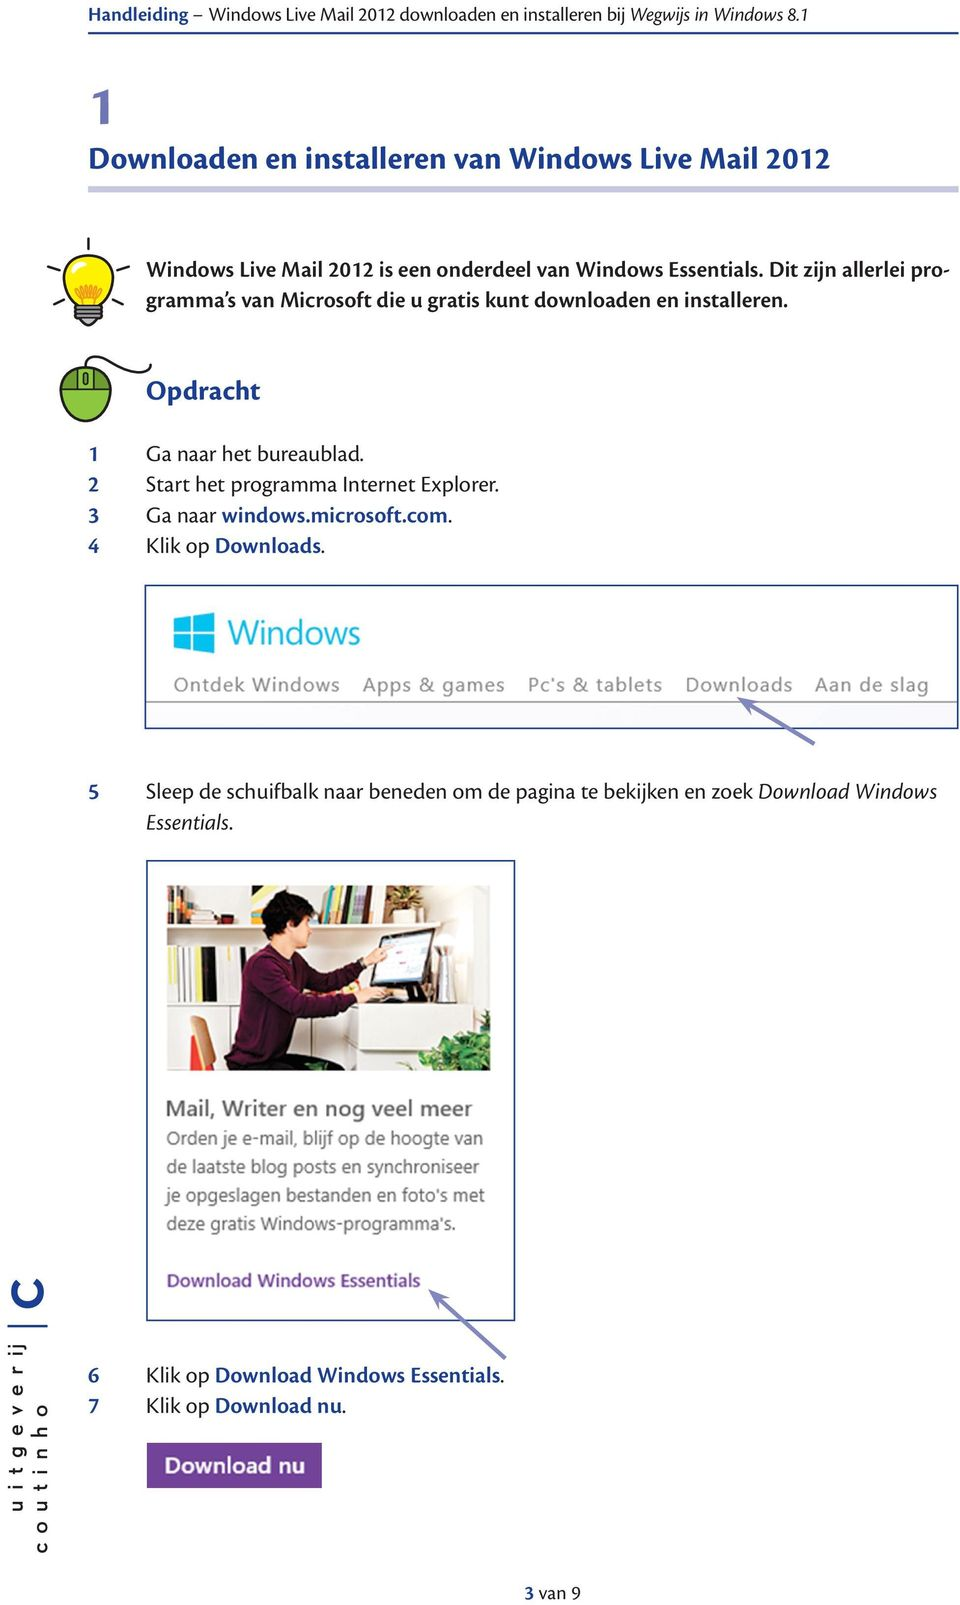 2 Start het programma Internet Explorer. 3 Ga naar windows.microsoft.com. 4 Klik op Downloads.